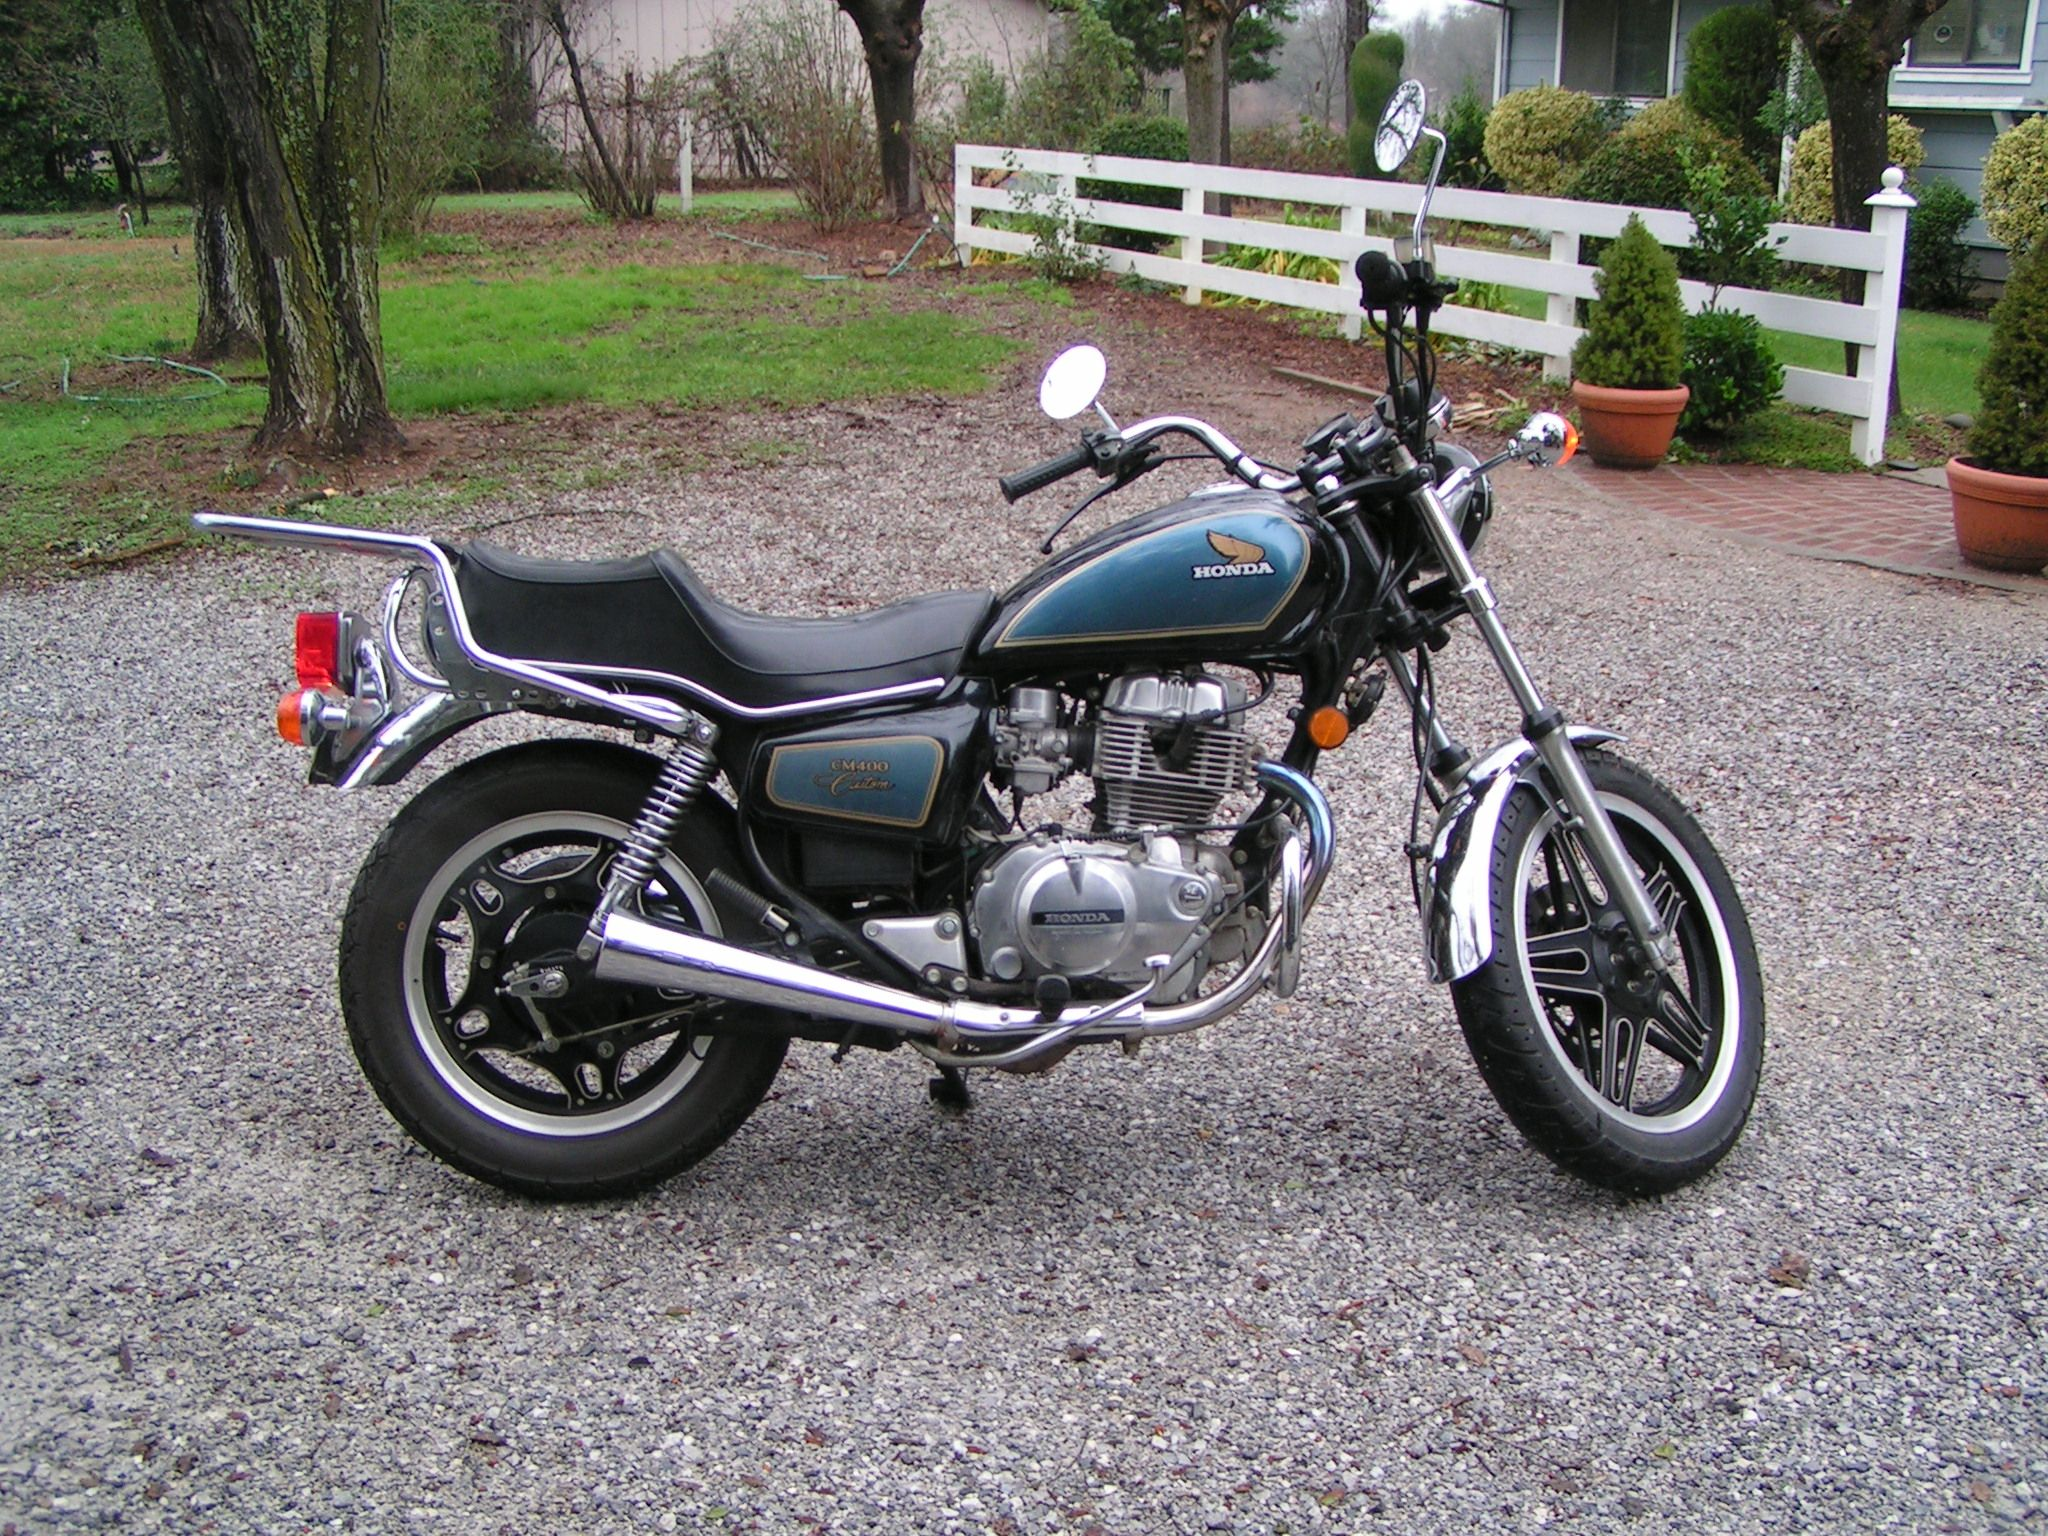 1981 Honda CM 400 - this is on Craigslist right now and I want it so